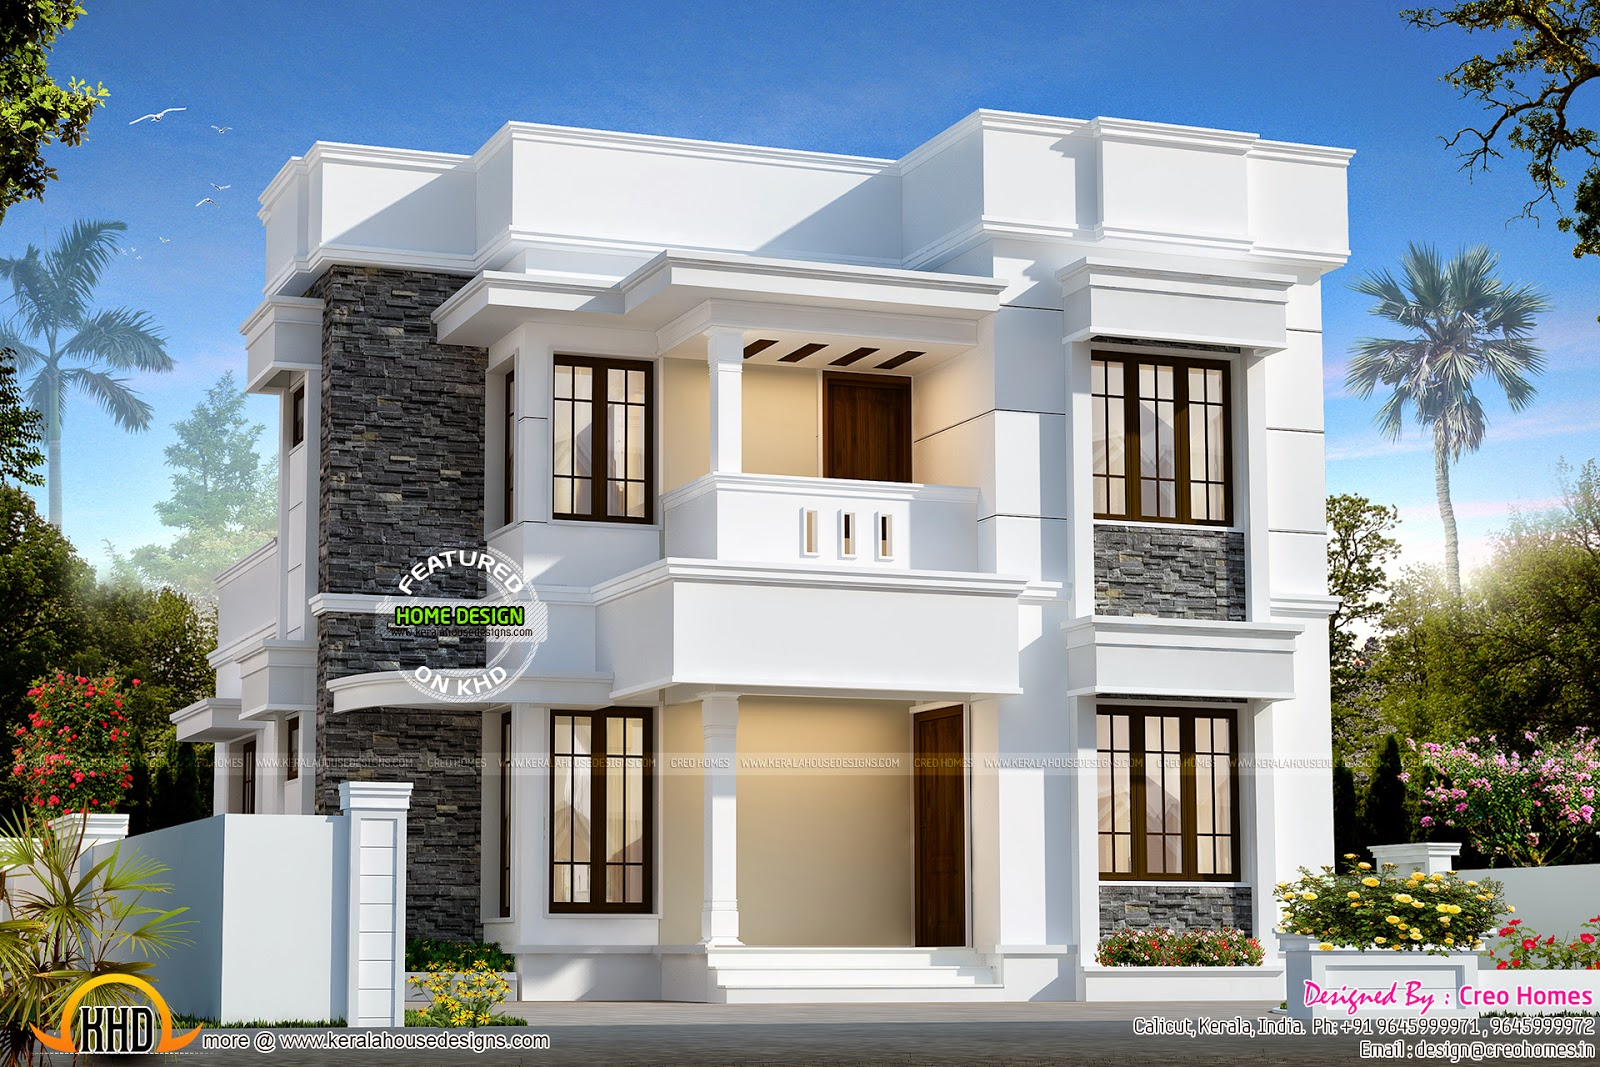 Nice And Small Double Storied House Kerala Home Design